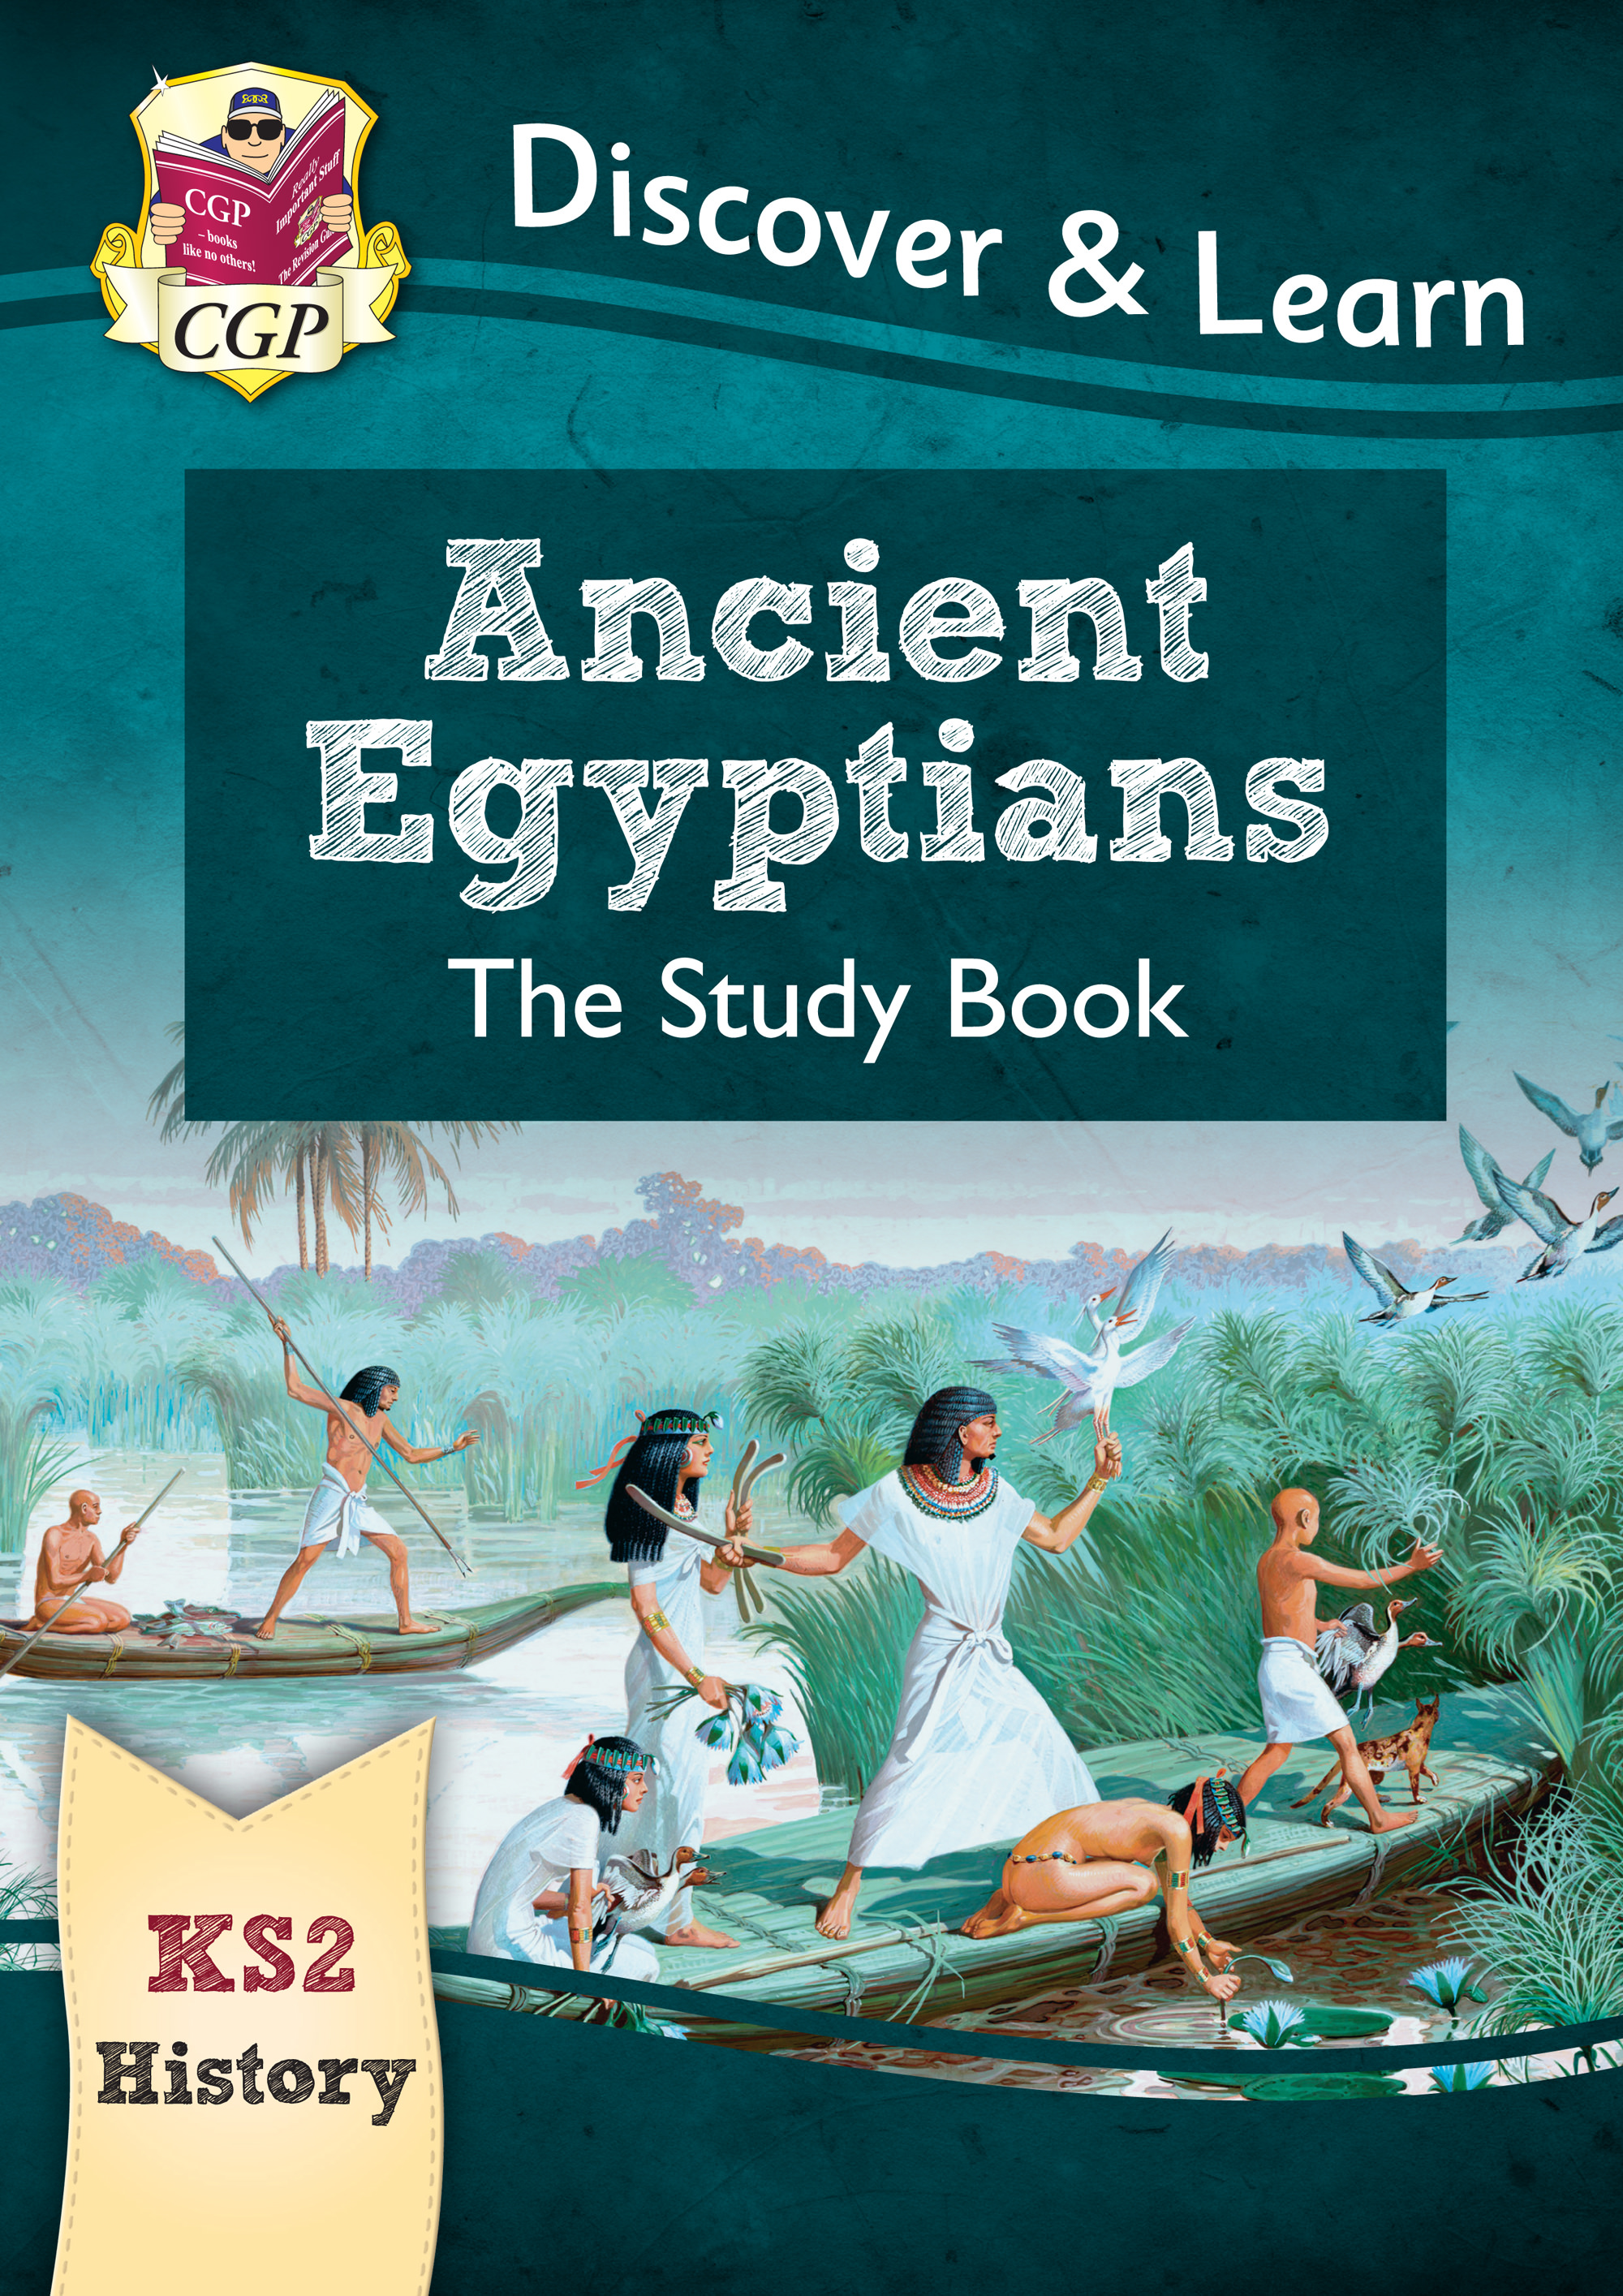 Ks2 Discover Learn History Ancient Egyptians Study Book Cgp Books